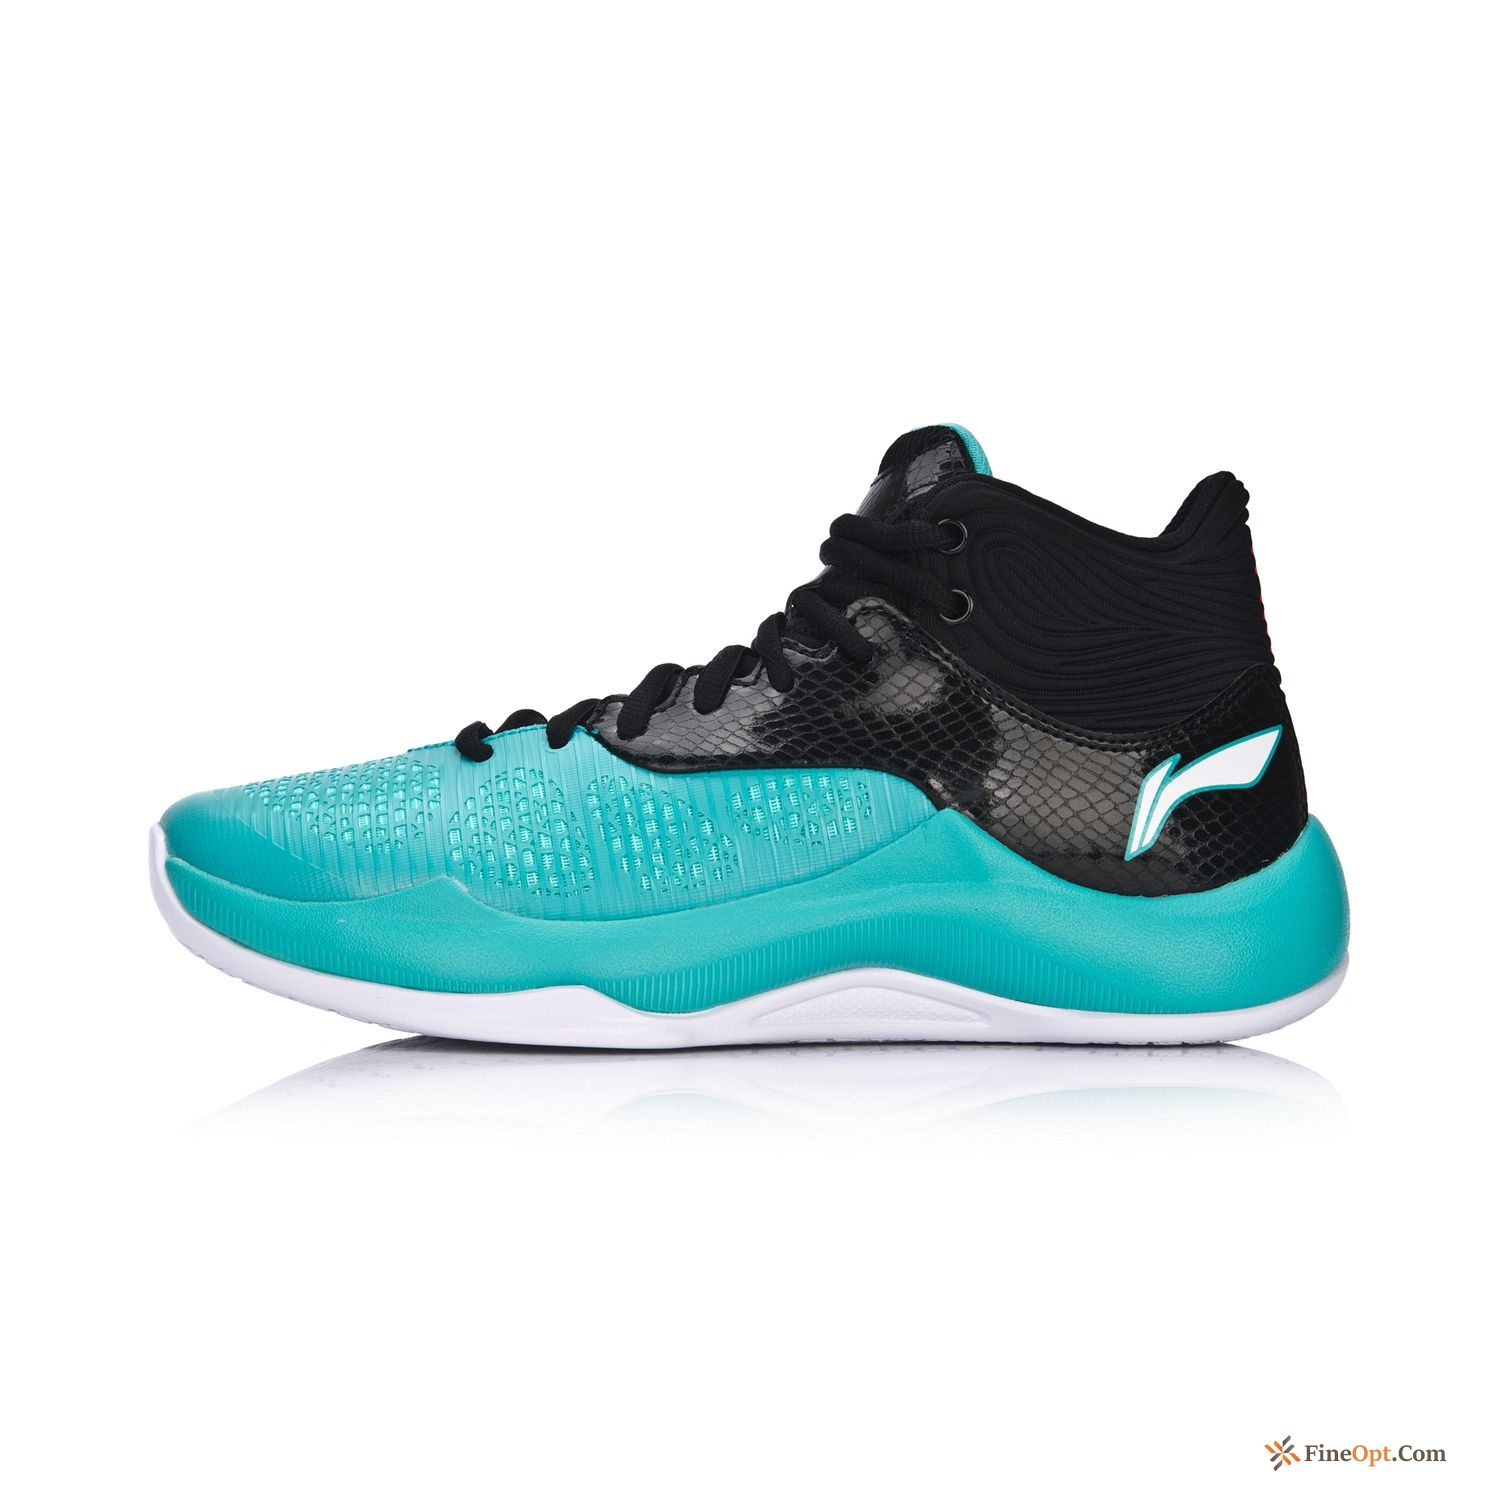 New Basketball Men's Anti-skid Summer Wear-resisting Basketball Shoes